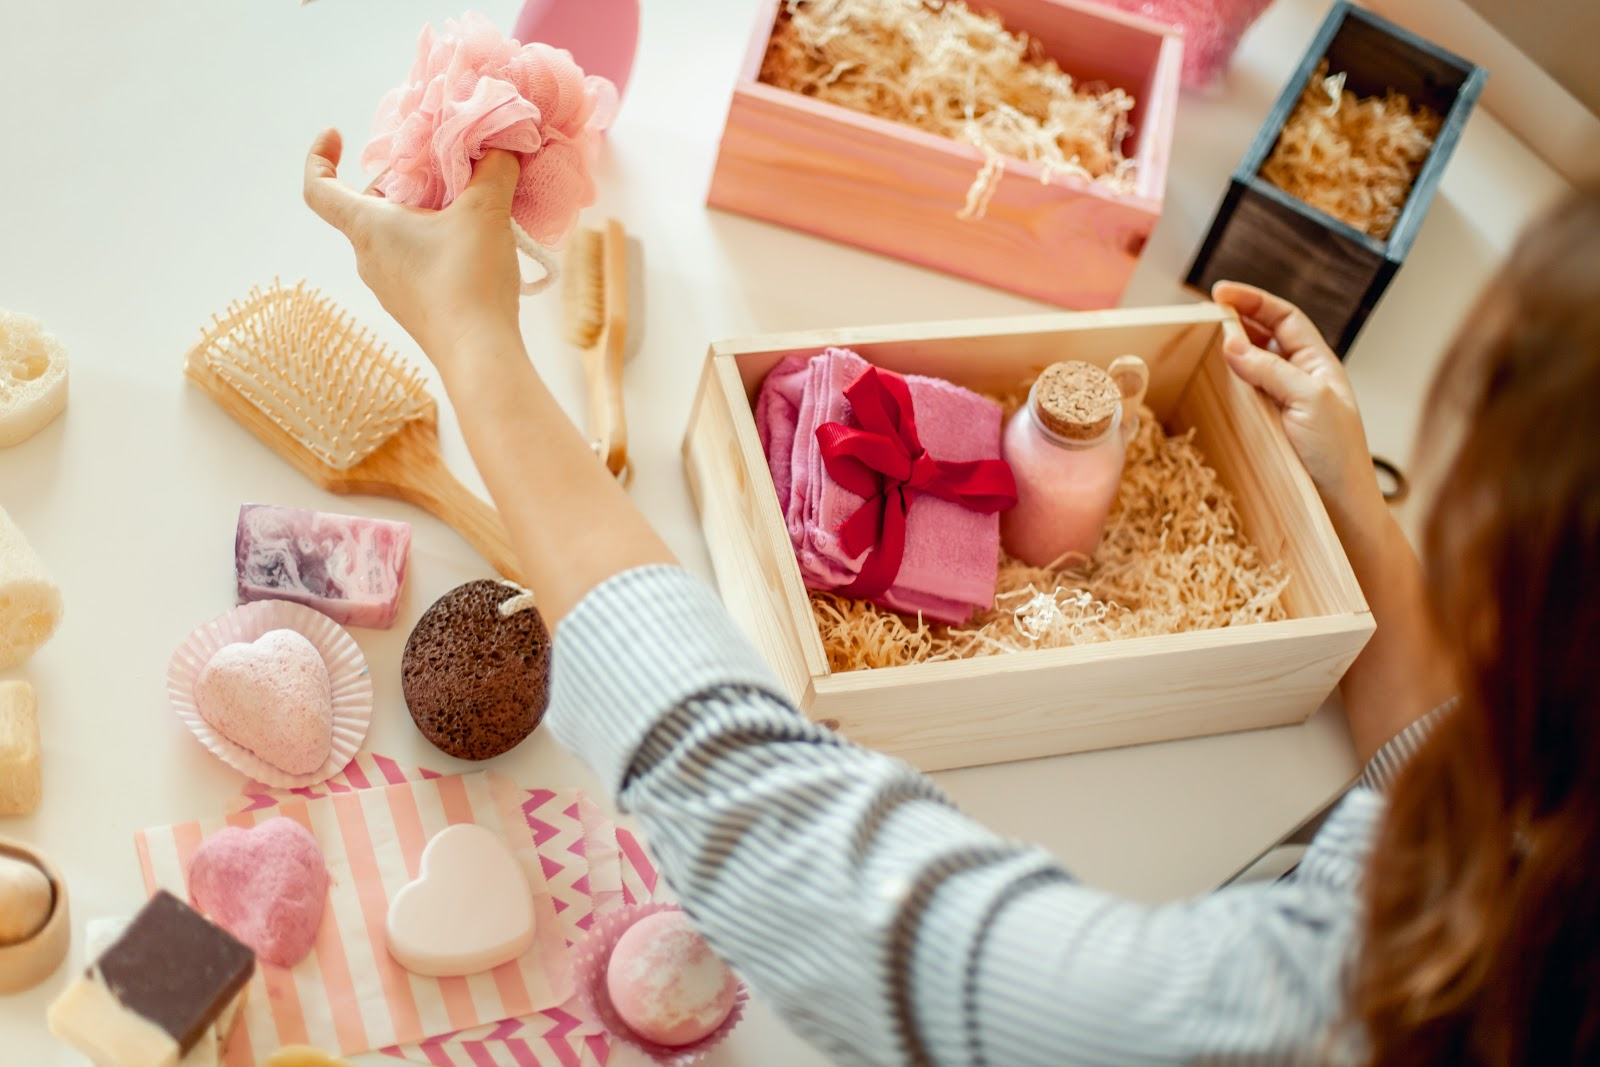 bridesmaid proposal ideas: Woman preparing gift boxes containing bath items